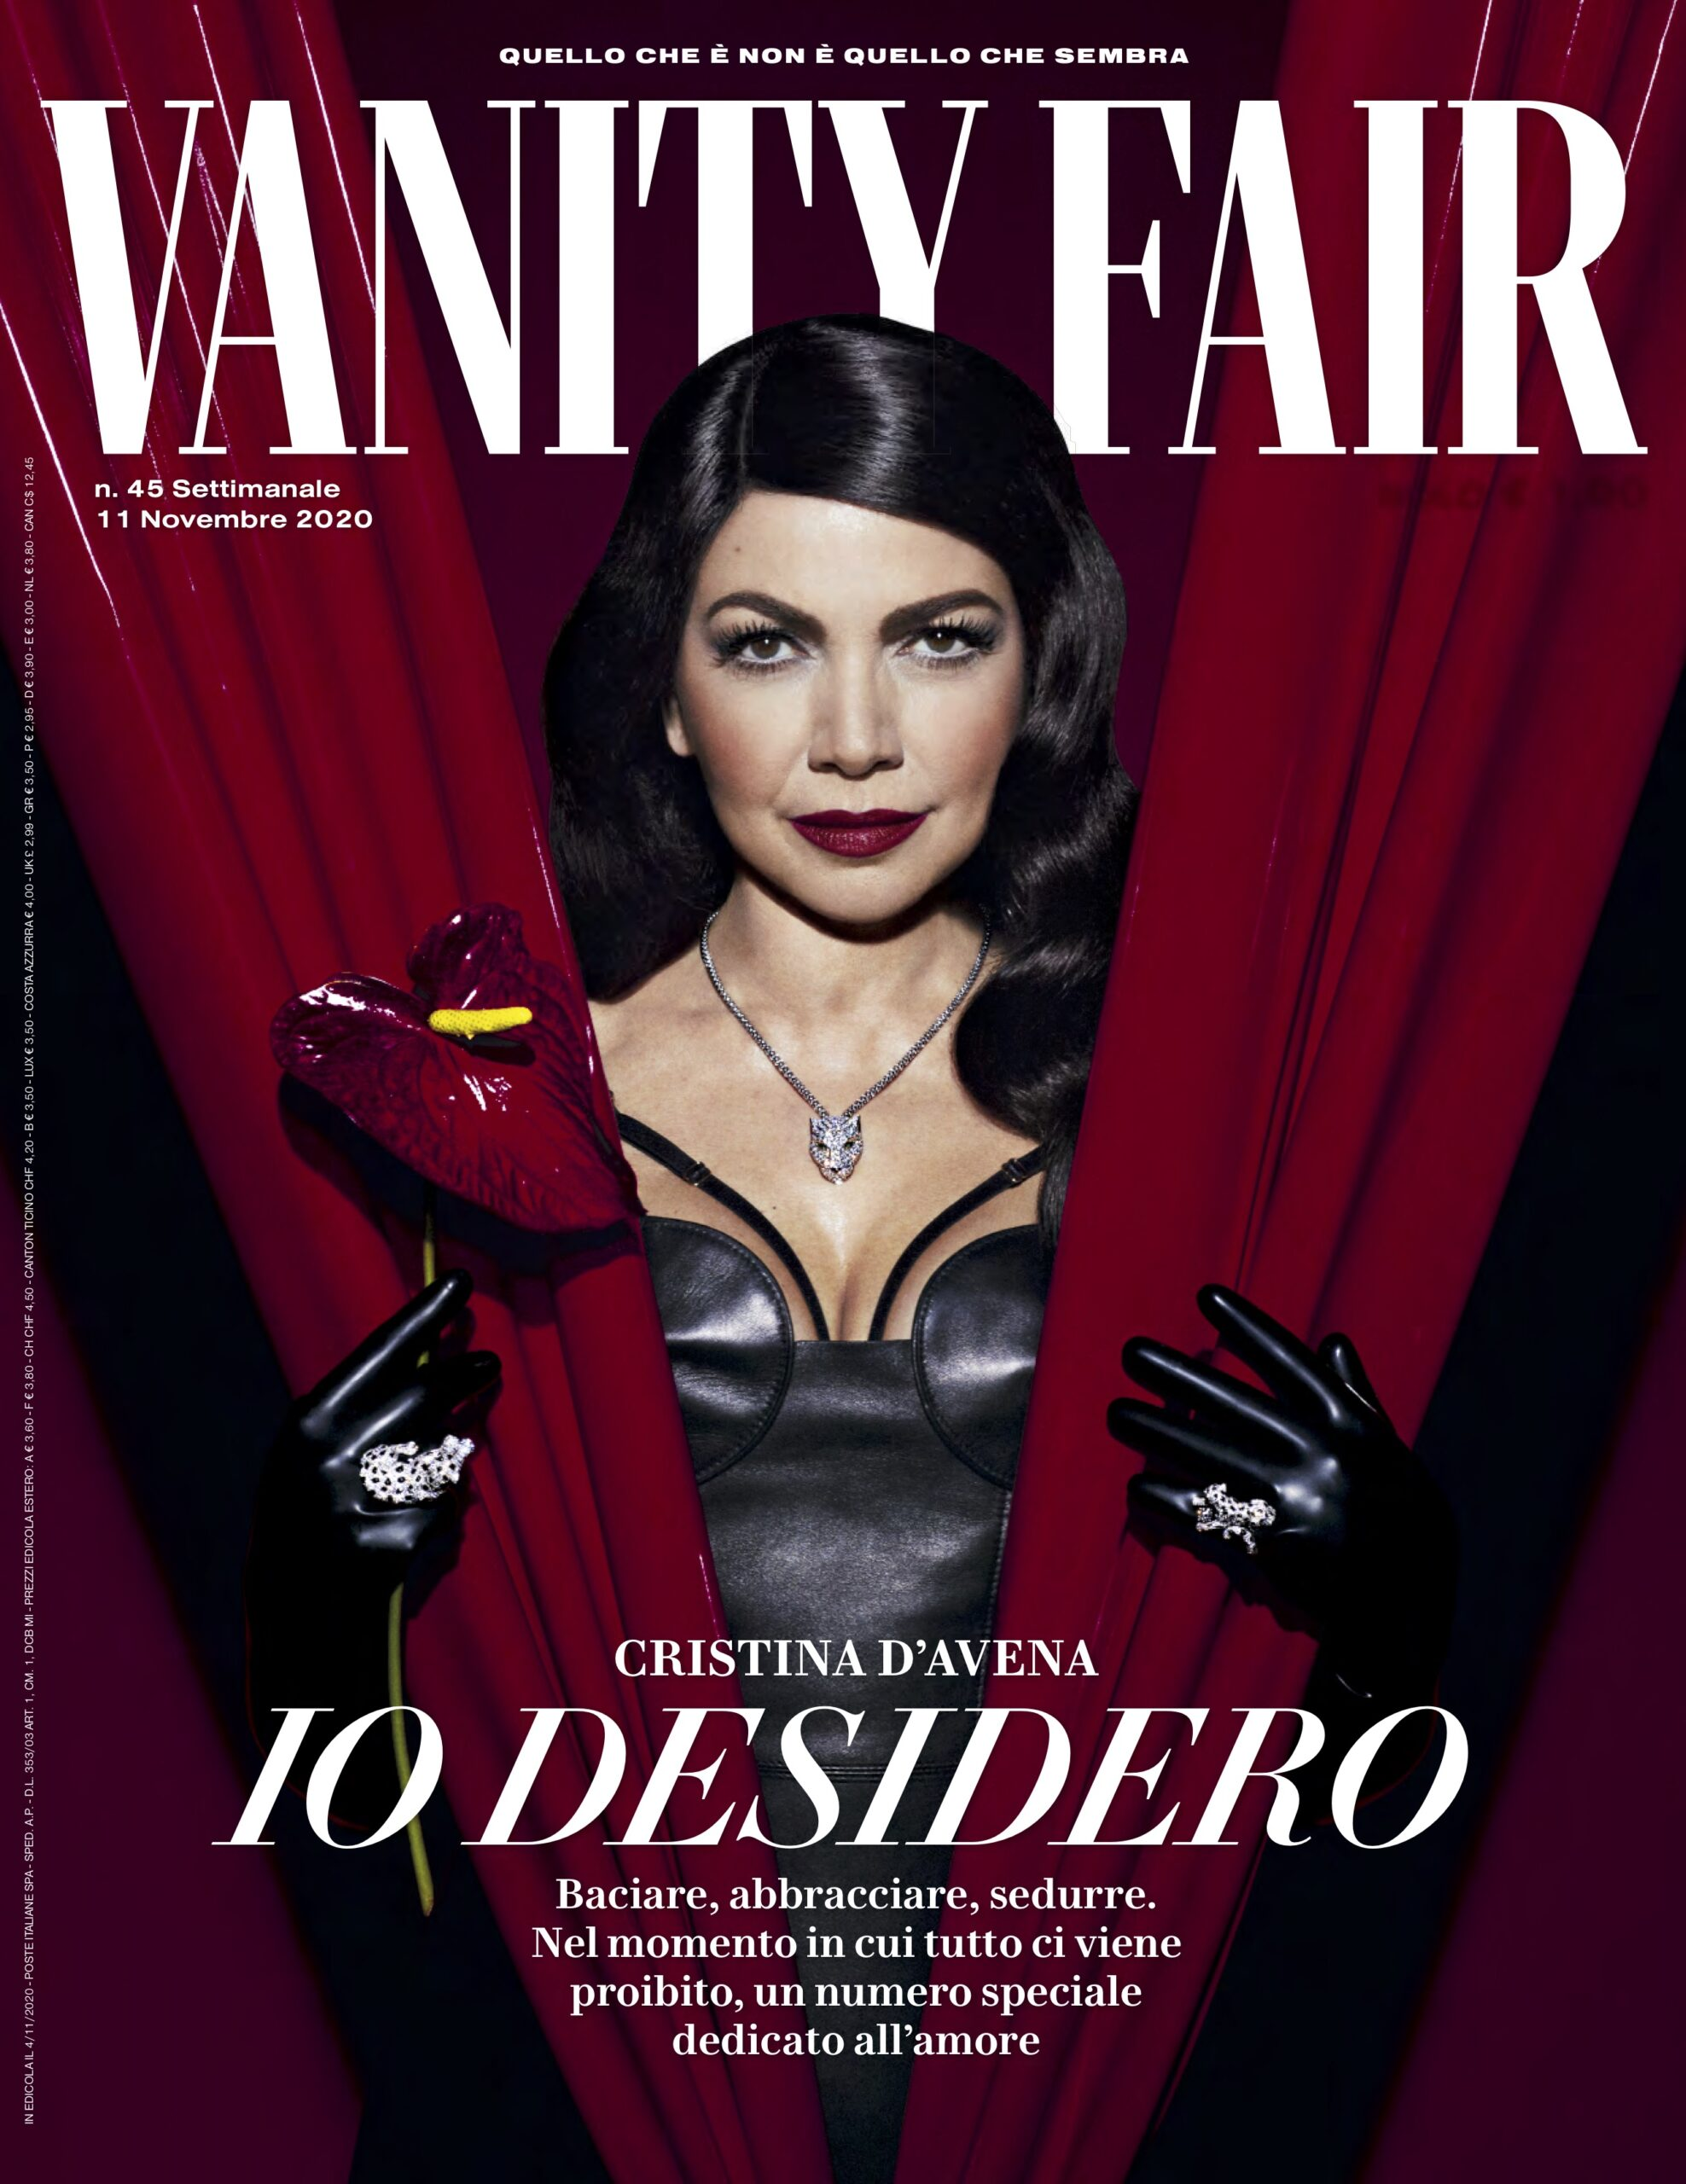 Vanity Fair Italy / «Non c'è Sesso Senza Amore» an Intervew by Irene Cao